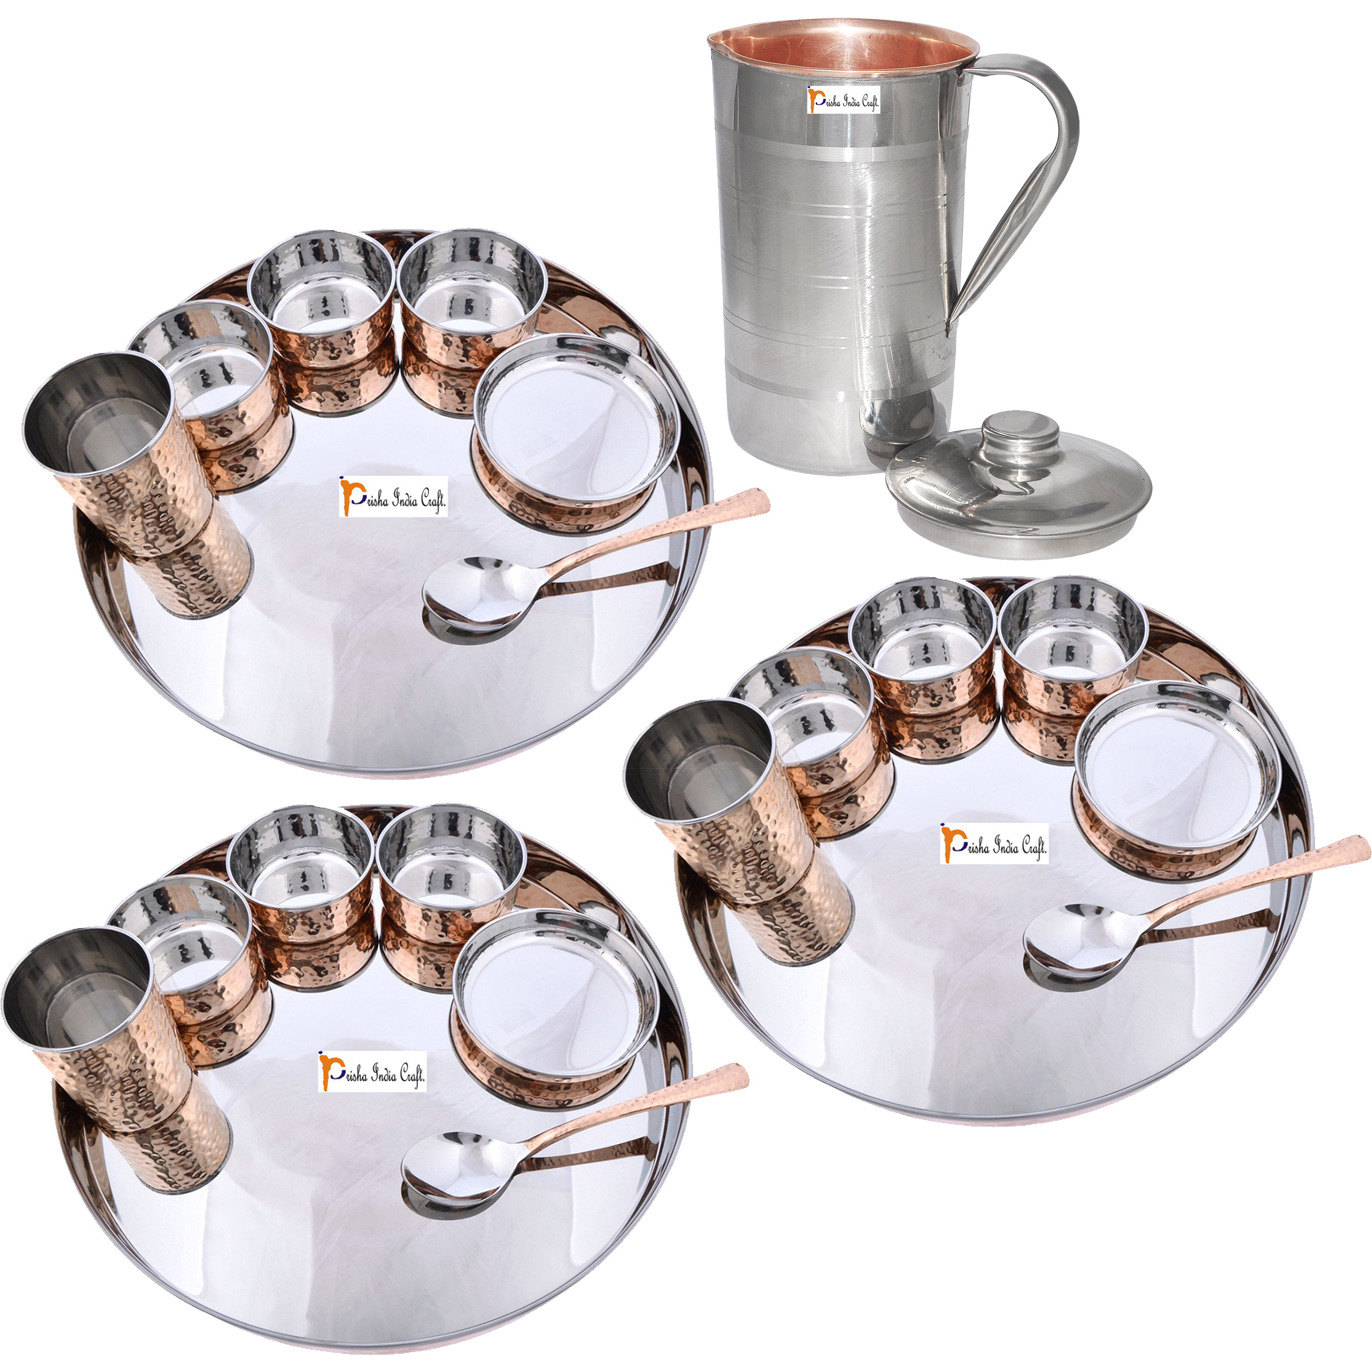 Prisha India Craft B. Set of 3 Dinnerware Traditional Stainless Steel Copper Dinner Set of Thali Plate, Bowls, Glass and Spoon, Dia 13  With 1 Luxury Style Pitcher Jug - Christmas Gift